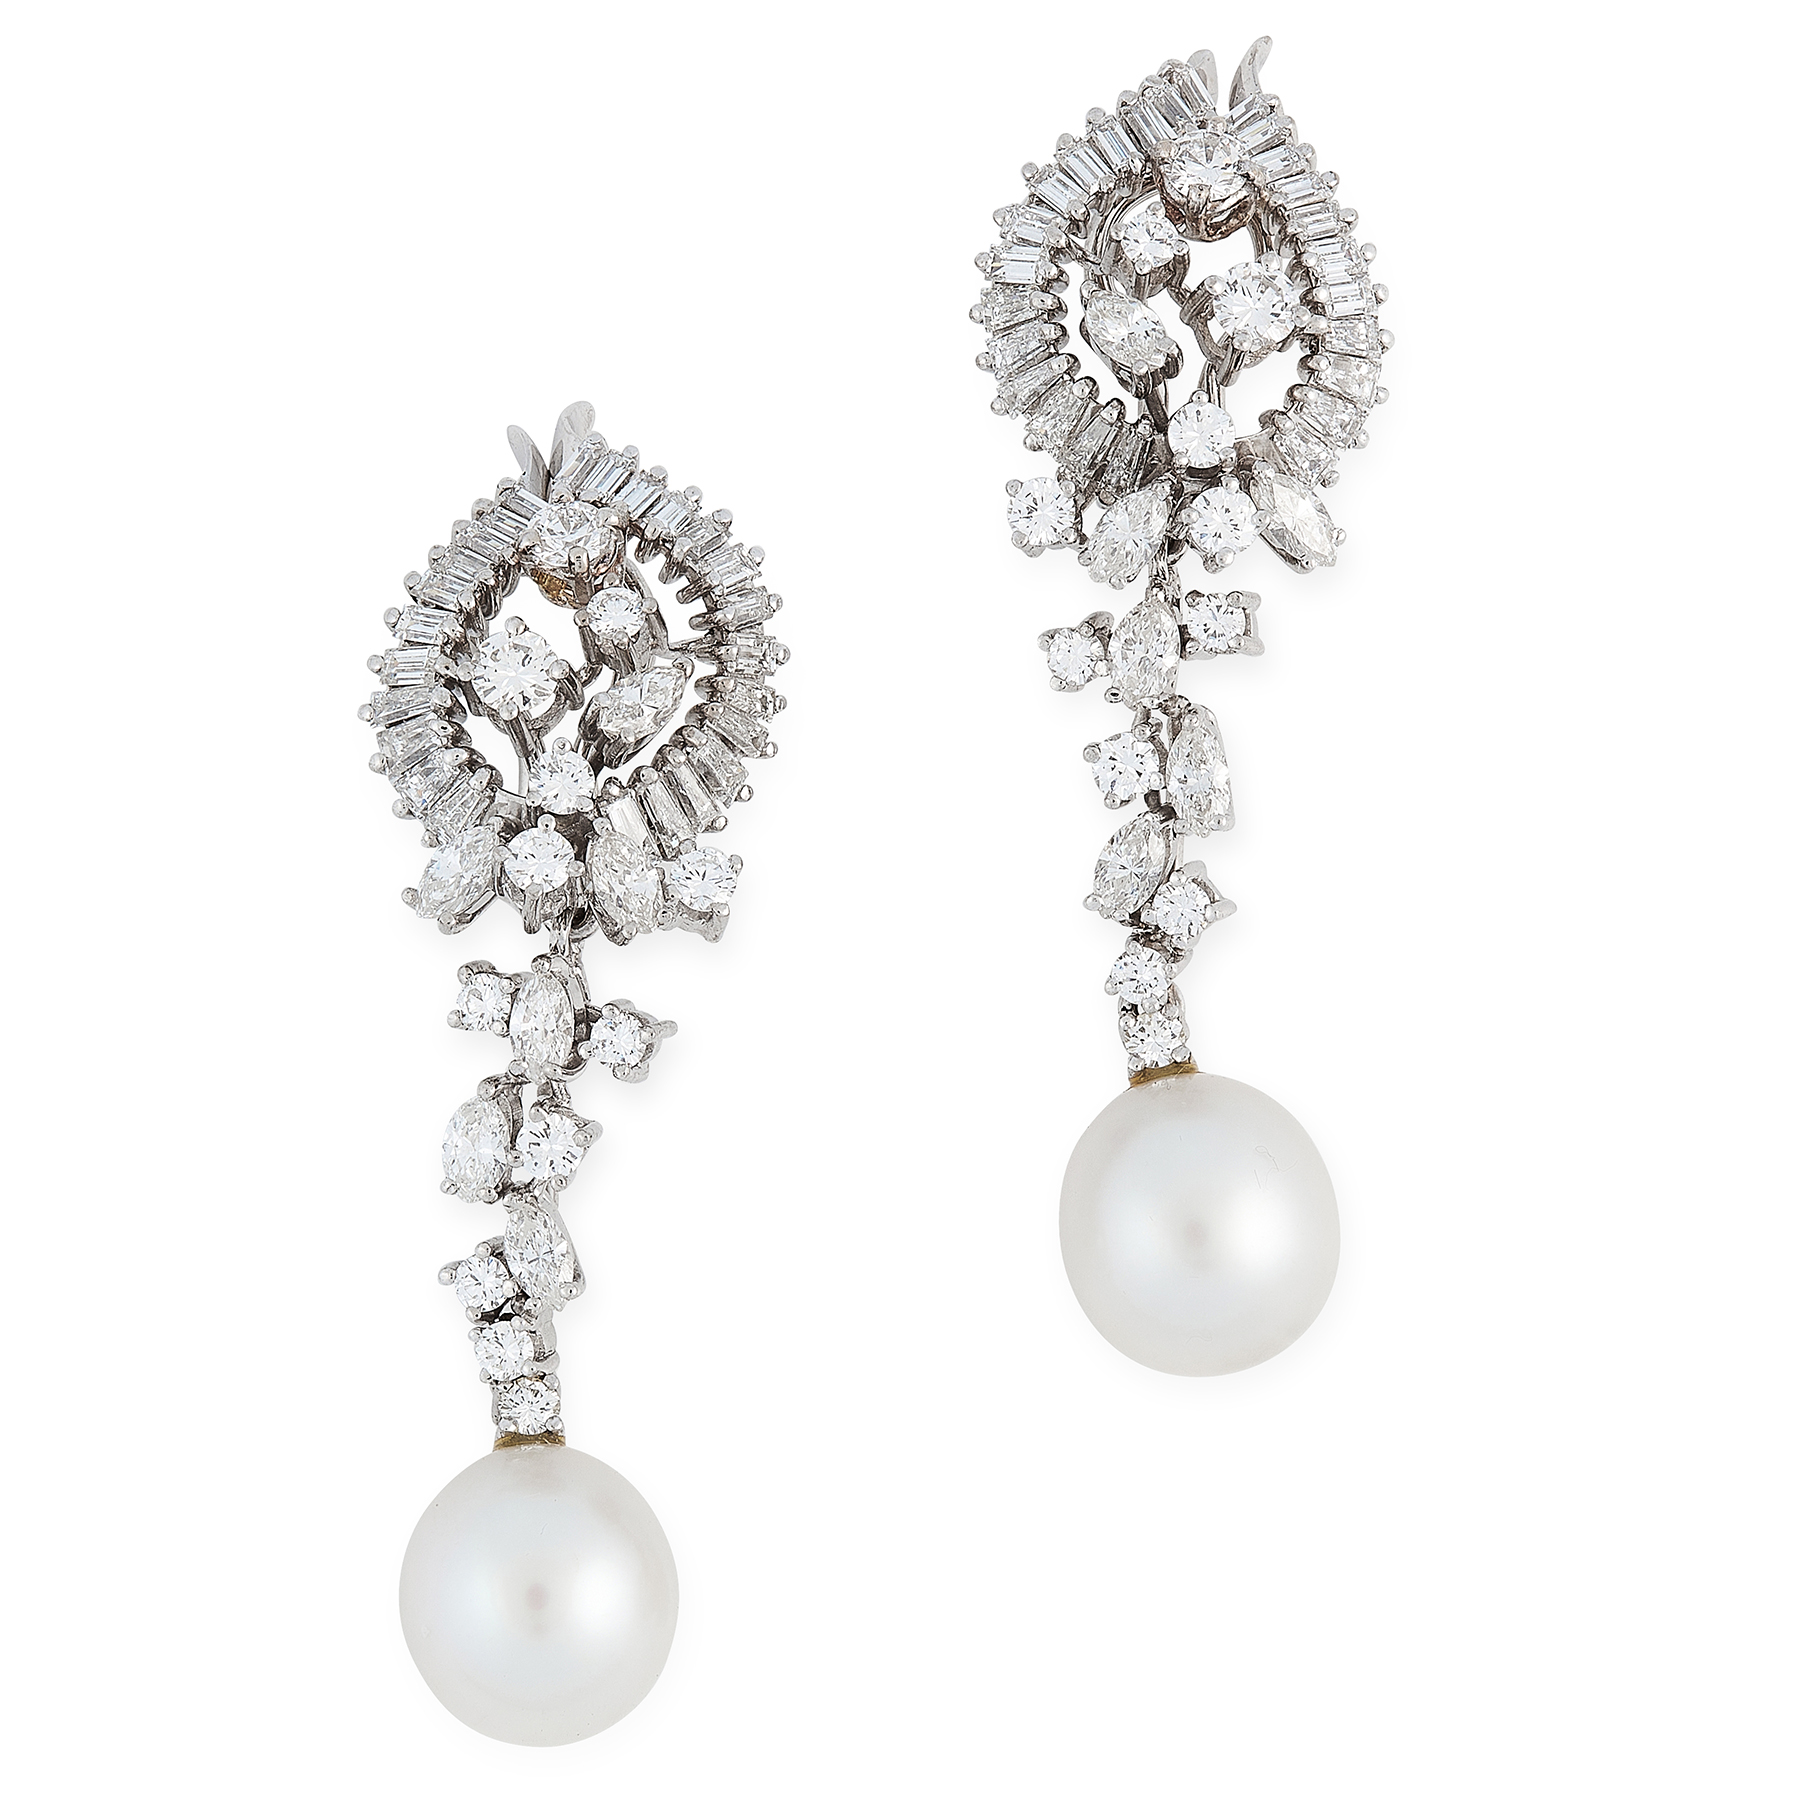 A PAIR OF PEARL AND DIAMOND EARRINGS in 18ct white gold, each designed as a cluster of round,